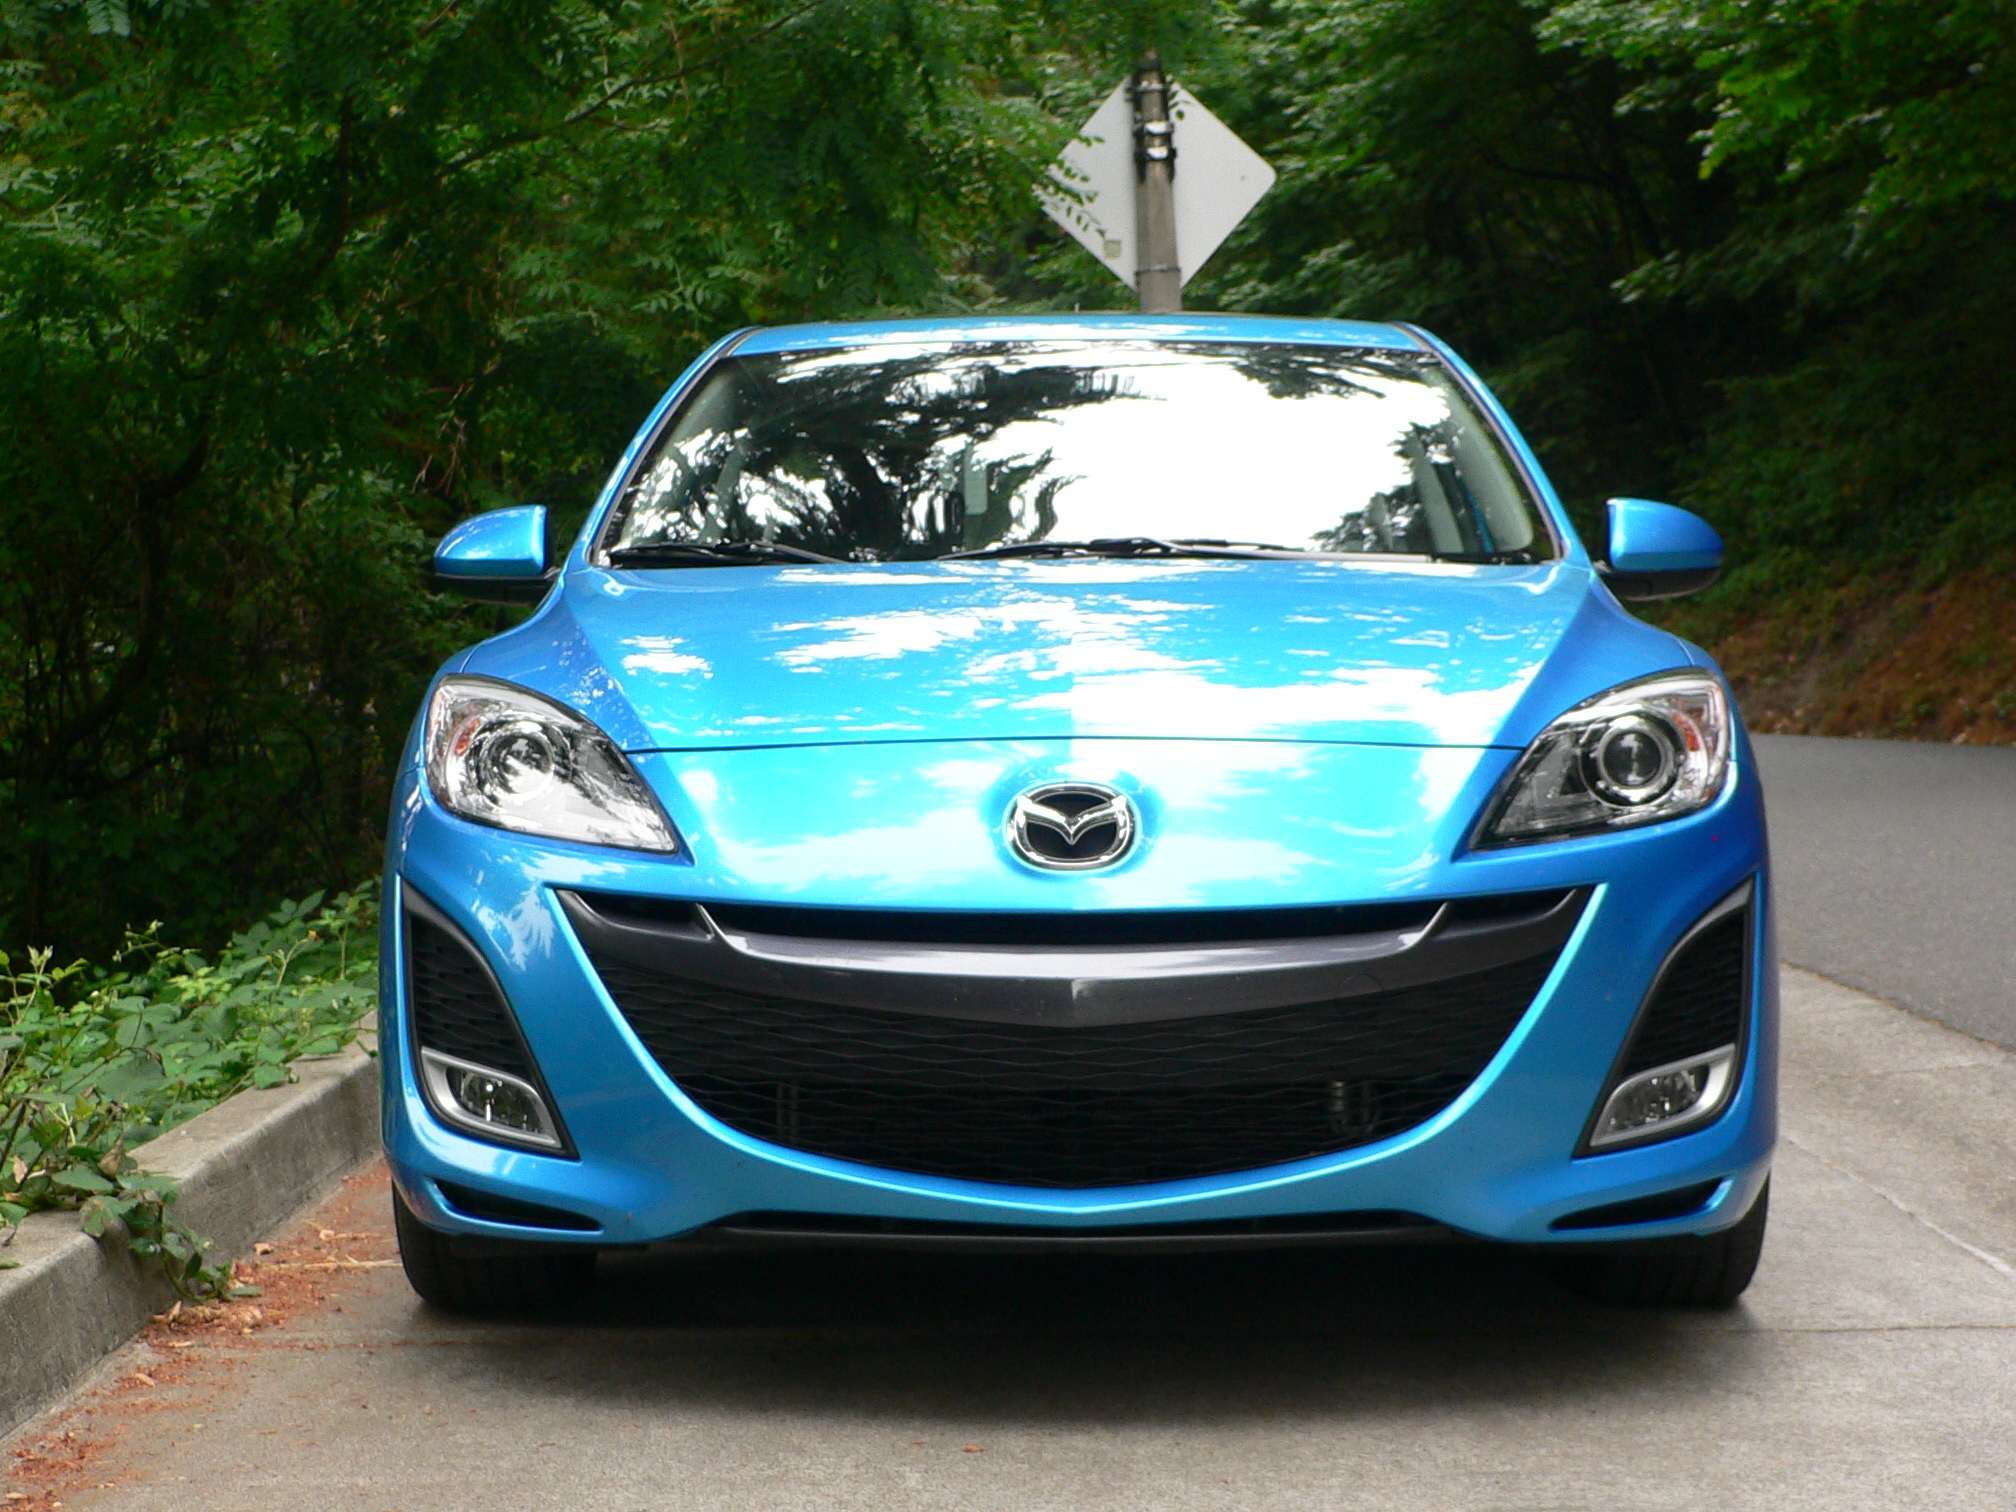 Madza Recalls 2011 Mazda2 2010 2011 Mazda3 Mazdaspeed3 For Seat Problems